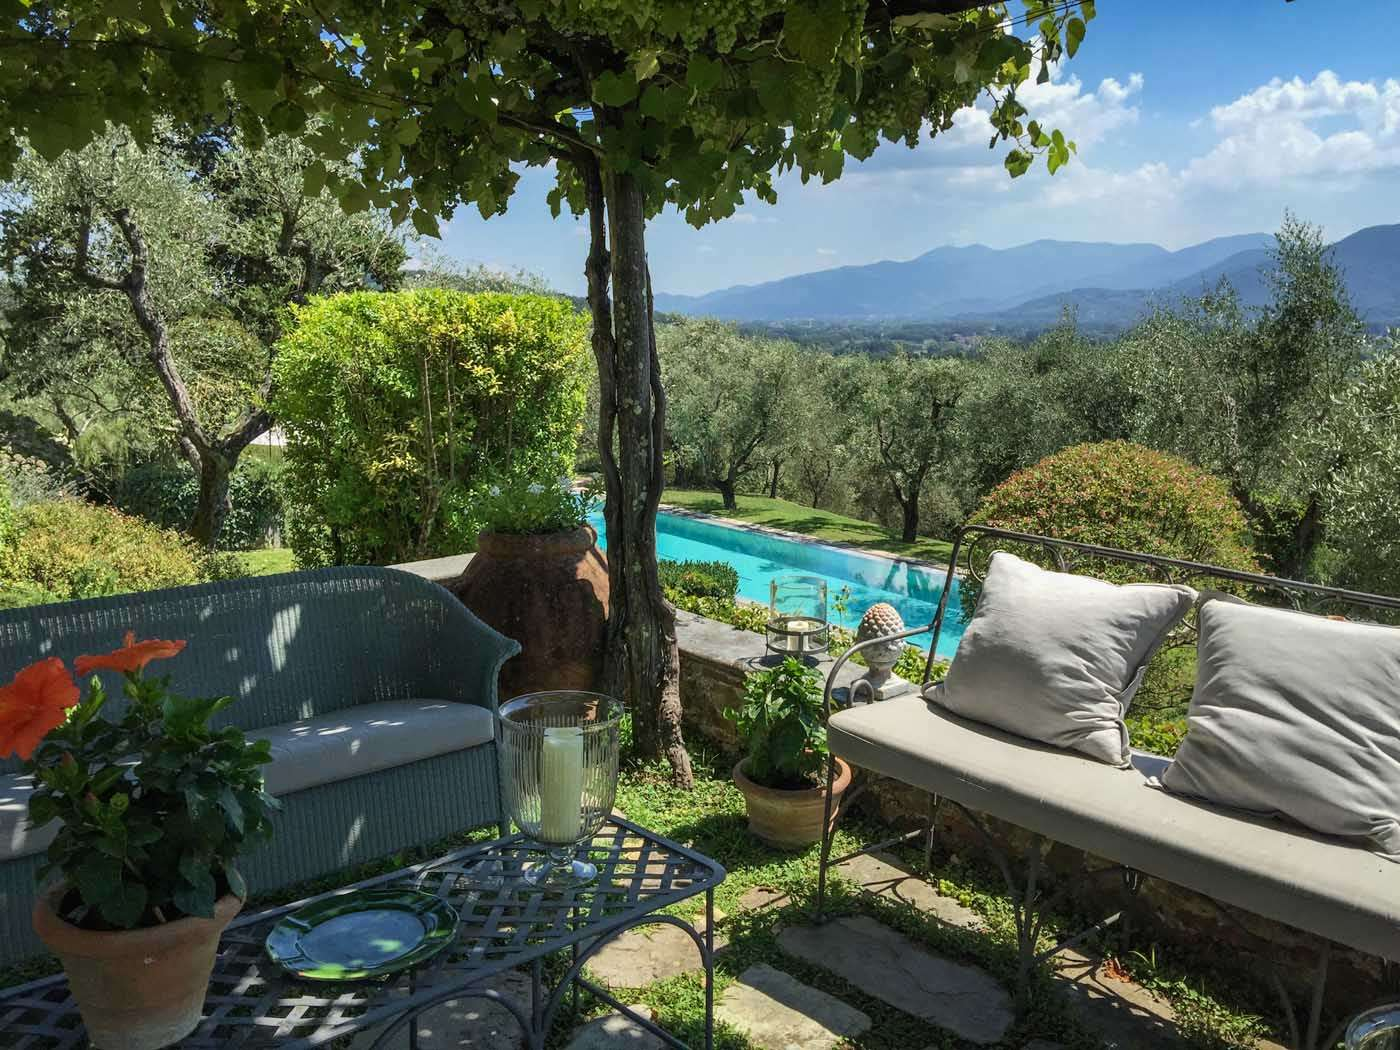 Luxury vacation rentals europe - Italy - Tuscany - Lucca - Villa San Martino - Image 1/25